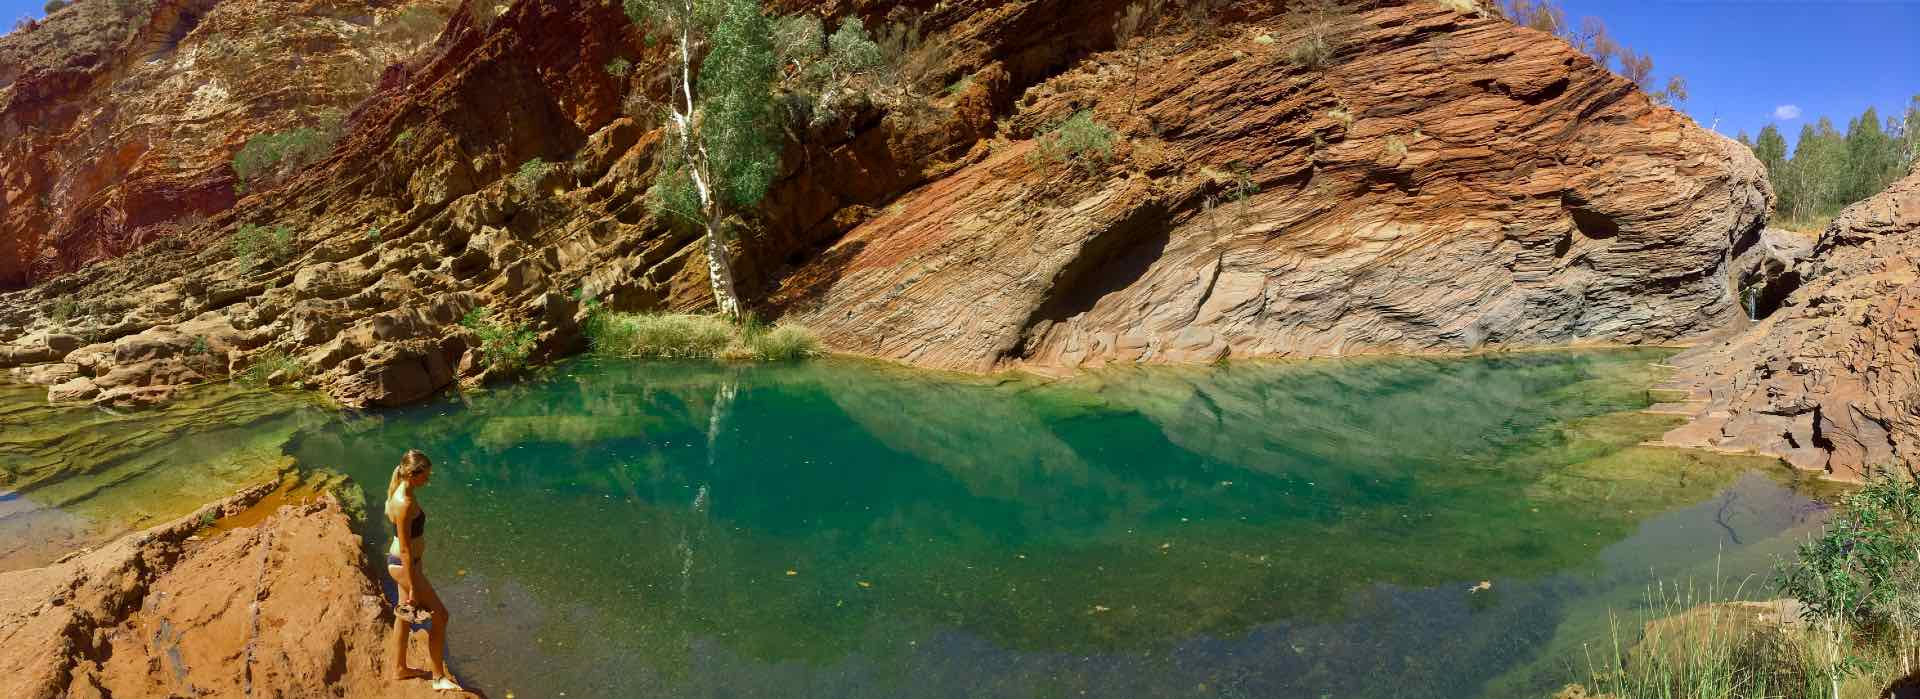 OZIAN Westaustralien Highlights Karijini National Park Hamersley Gorge